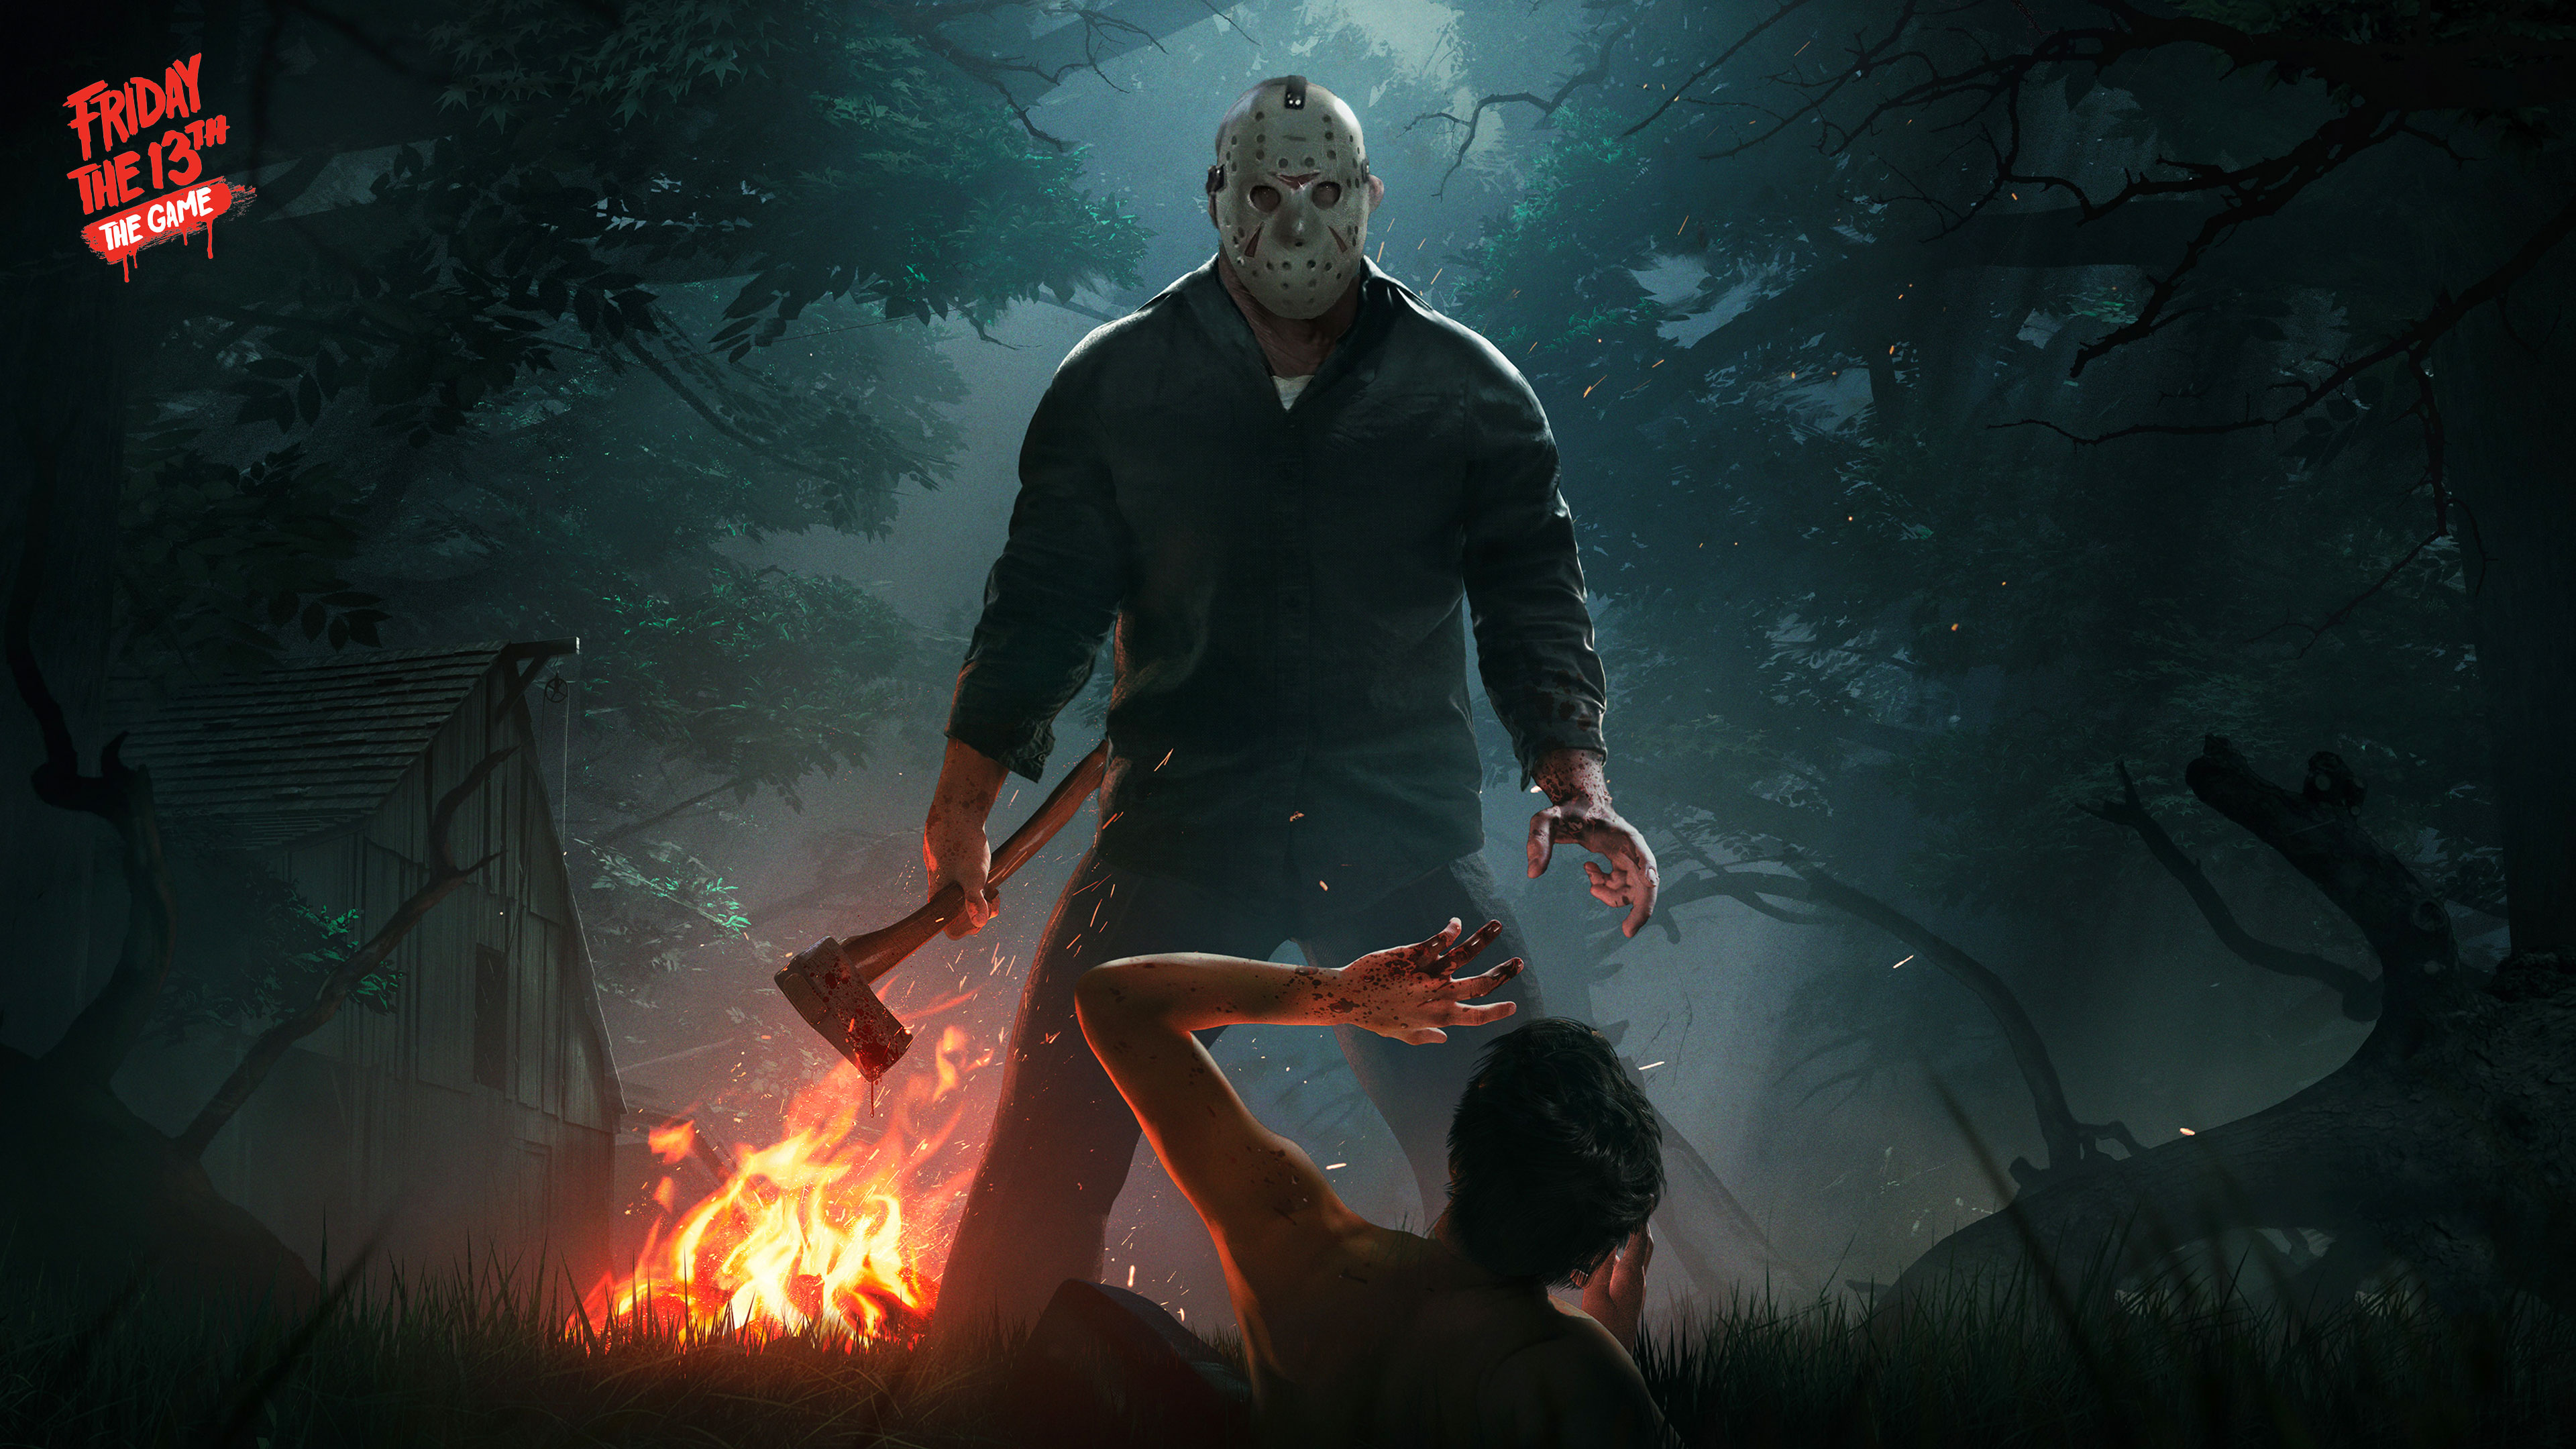 Friday The 13th The Game Wallpapers In Ultra Hd 4k Gameranx